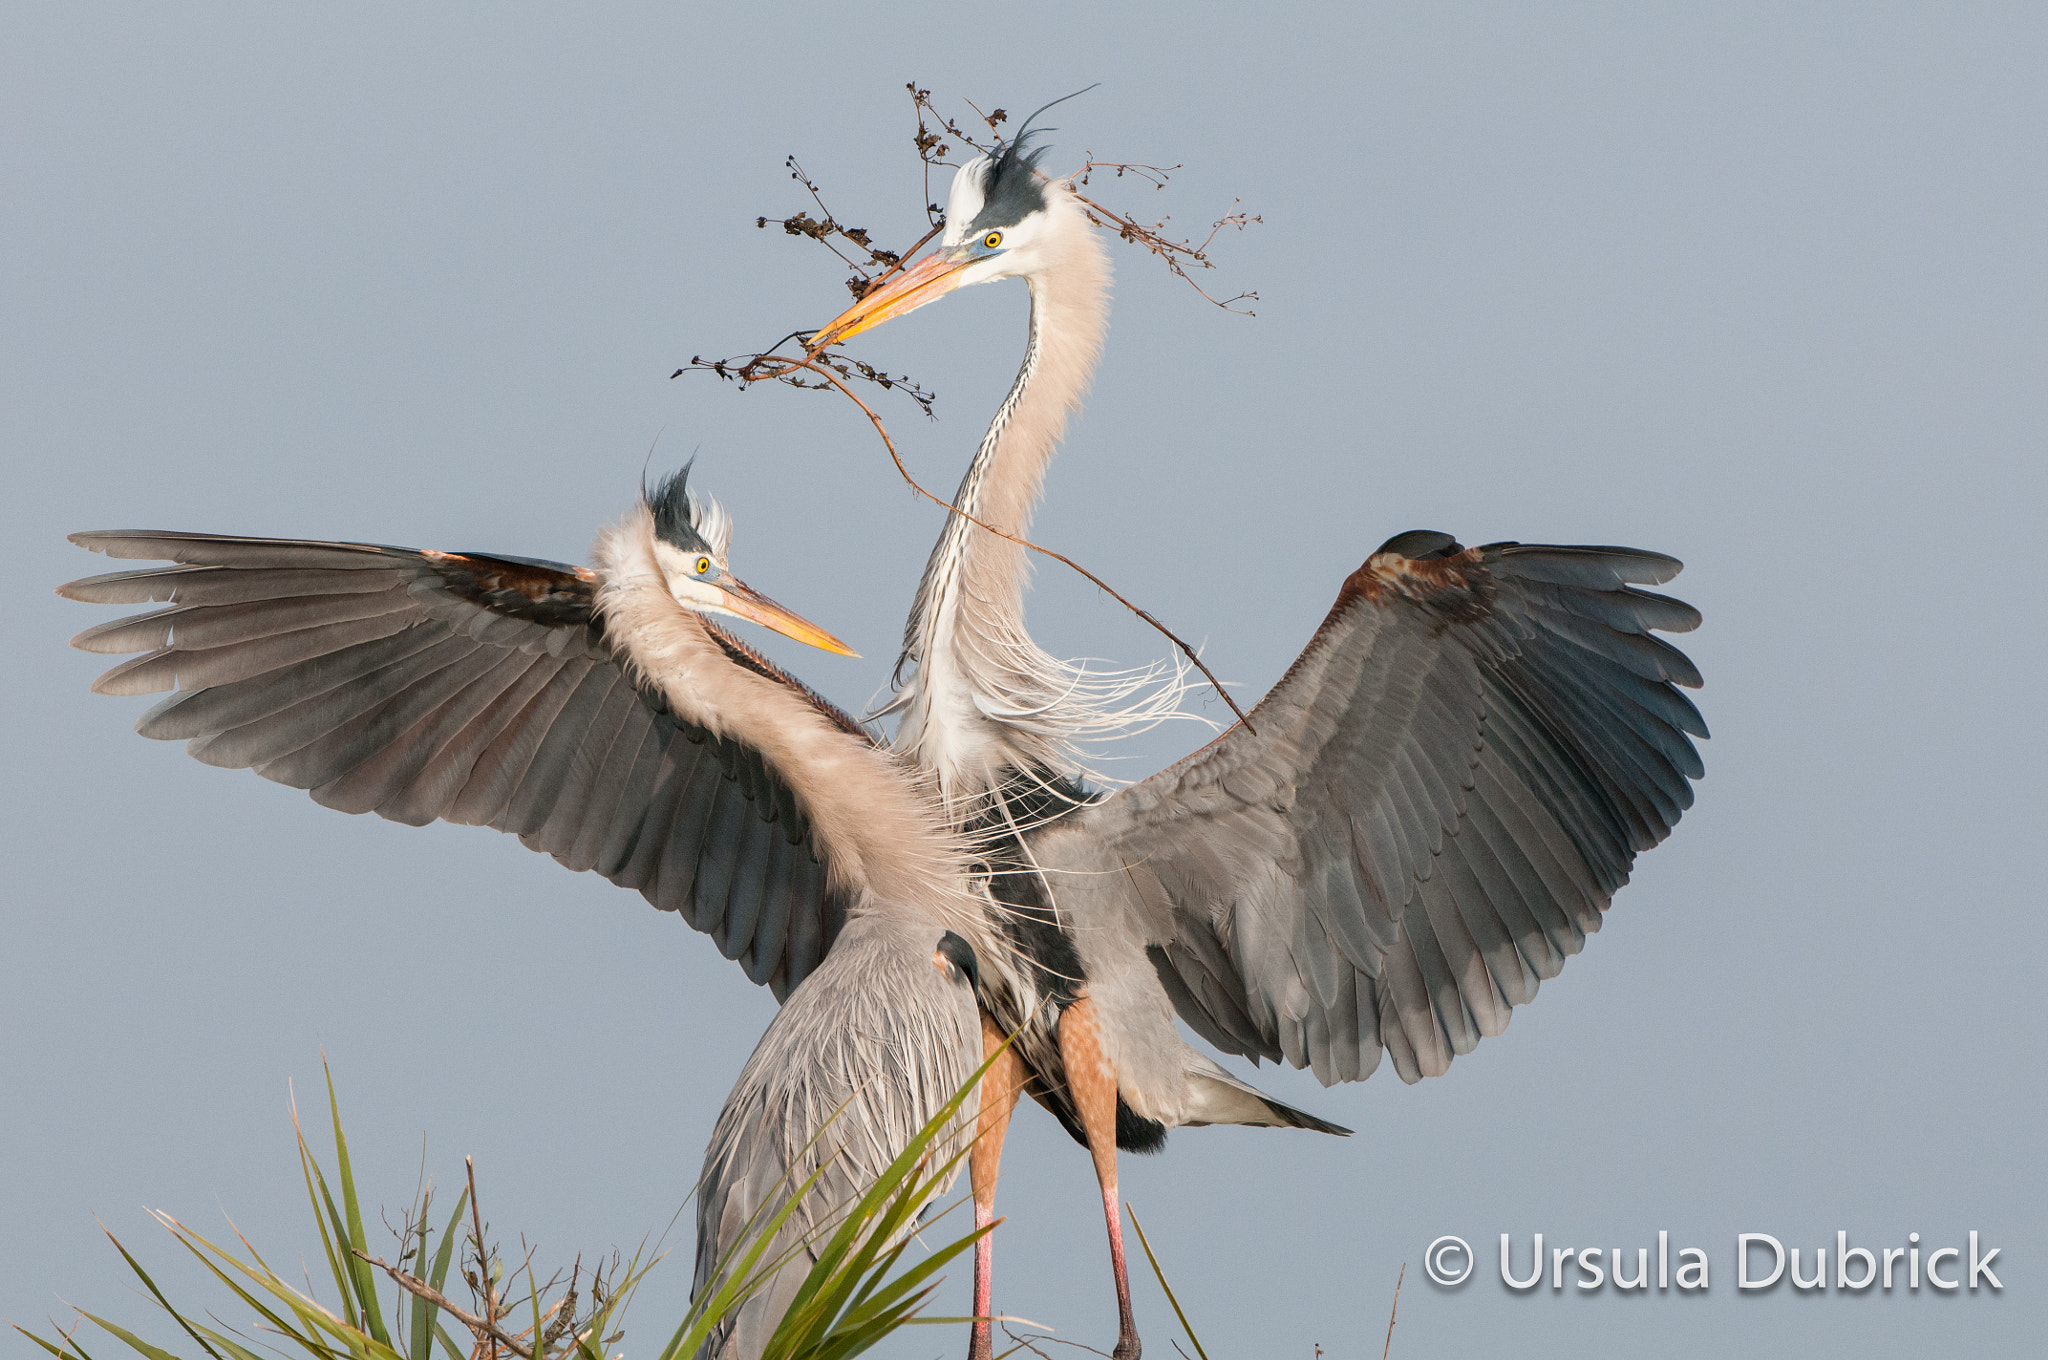 Photograph Nesting Material Delivery by Ursula Dubrick on 500px